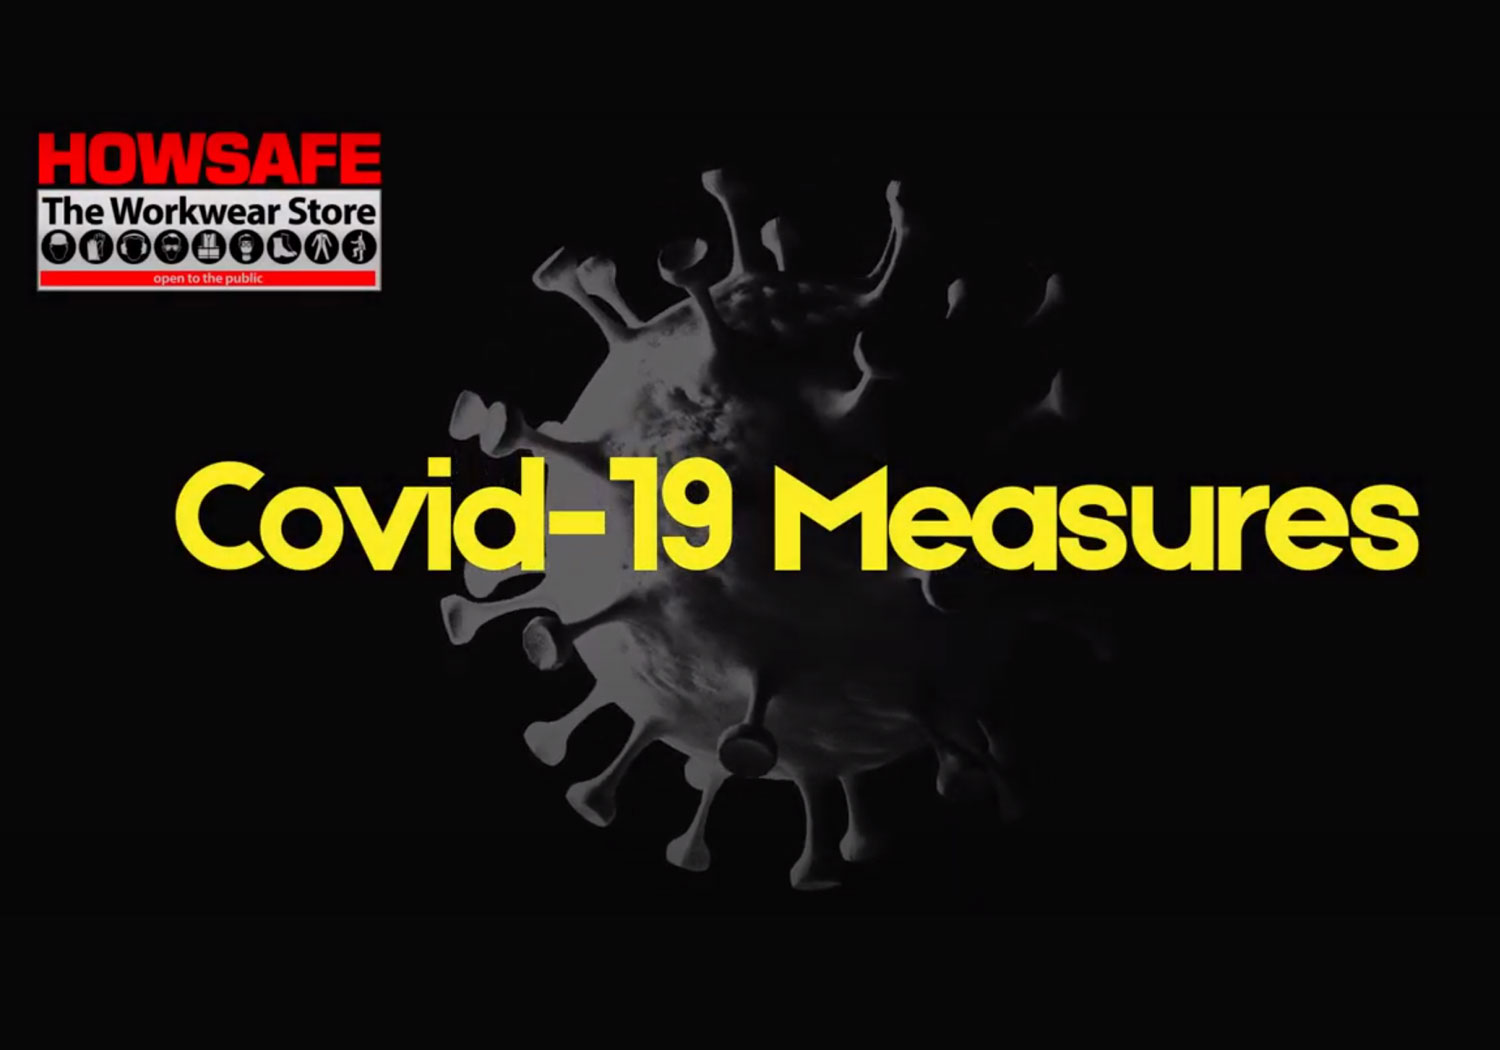 Workwear Store Covid-19 Measures